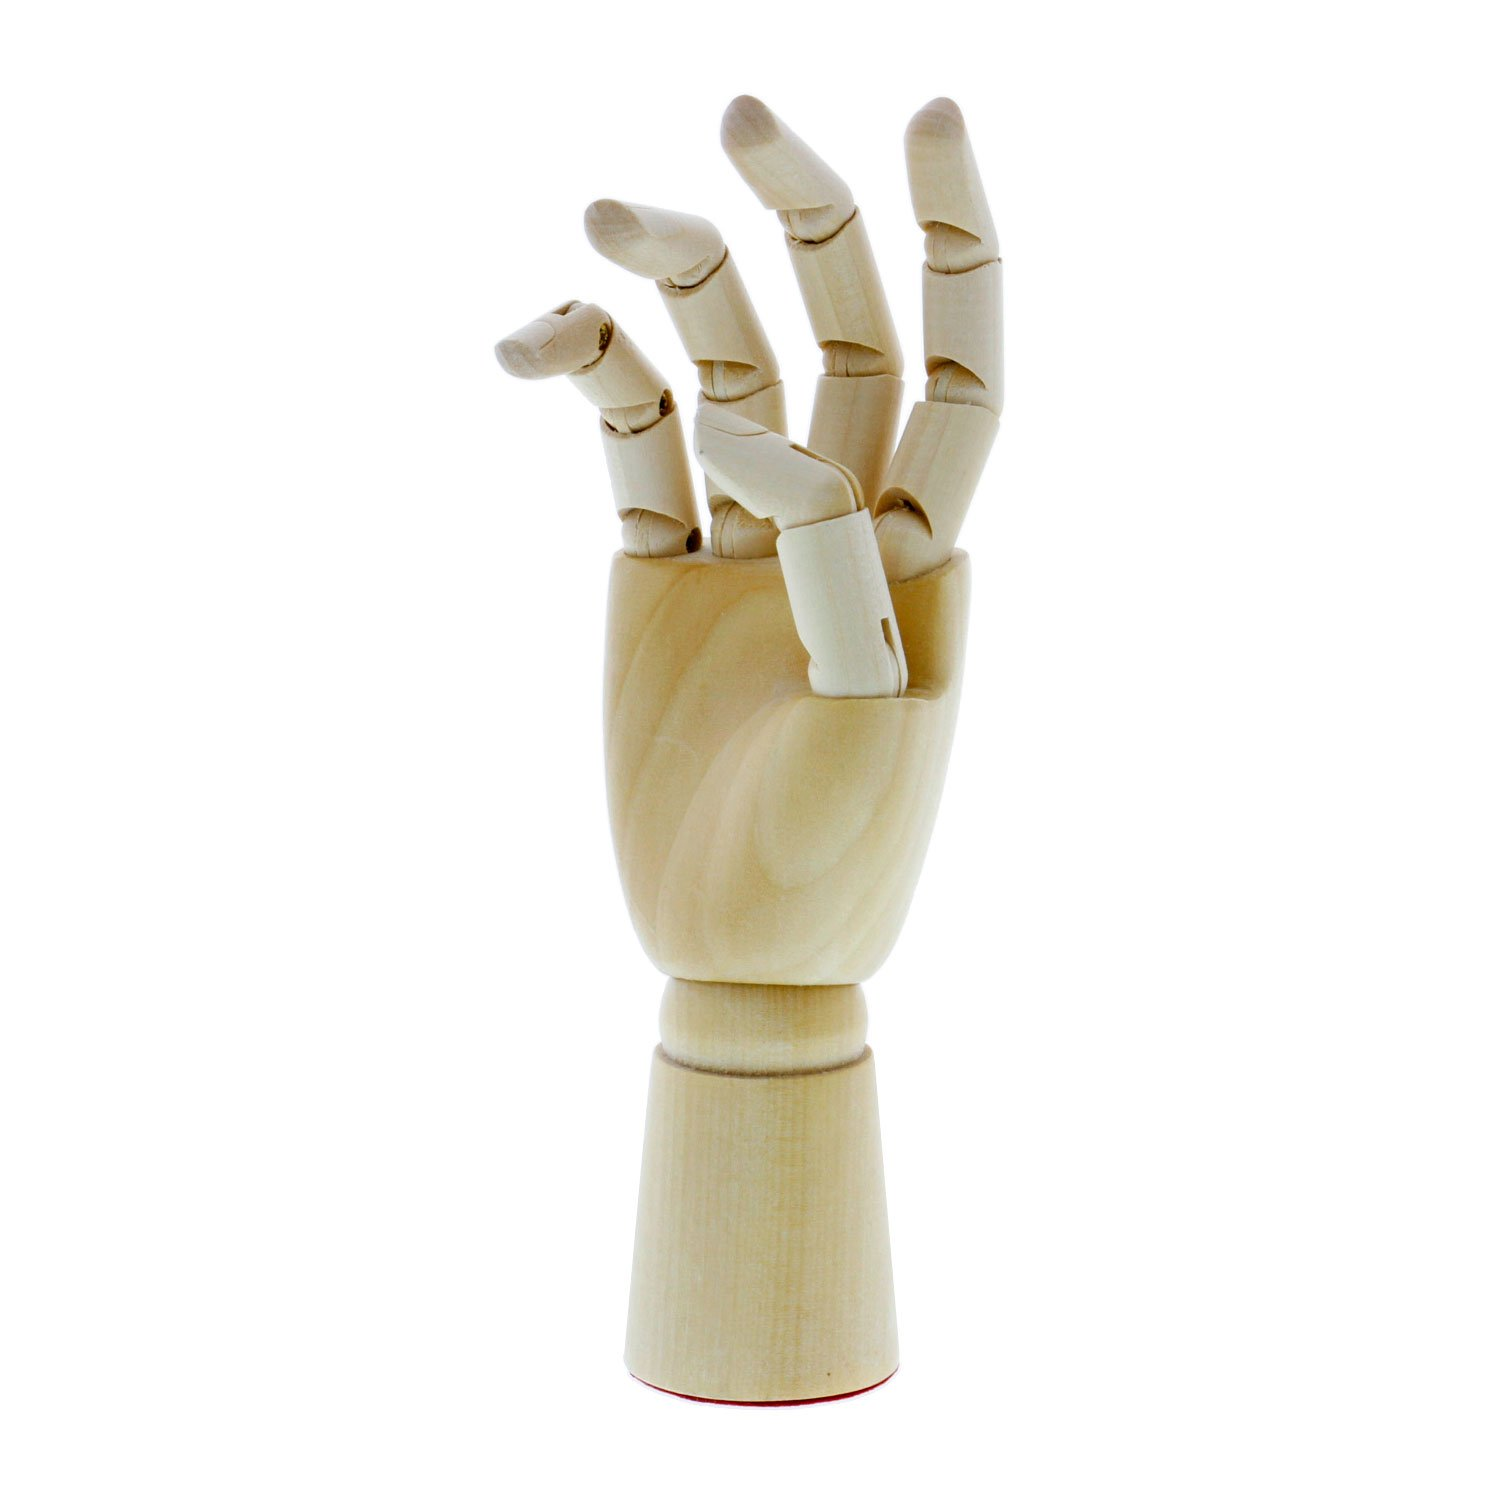 US Art Supply Wood Artist Drawing Manikin Articulated Mannequin with Wooden Flexible Fingers - Perfect for drawing the human hand (7'' Right Hand)